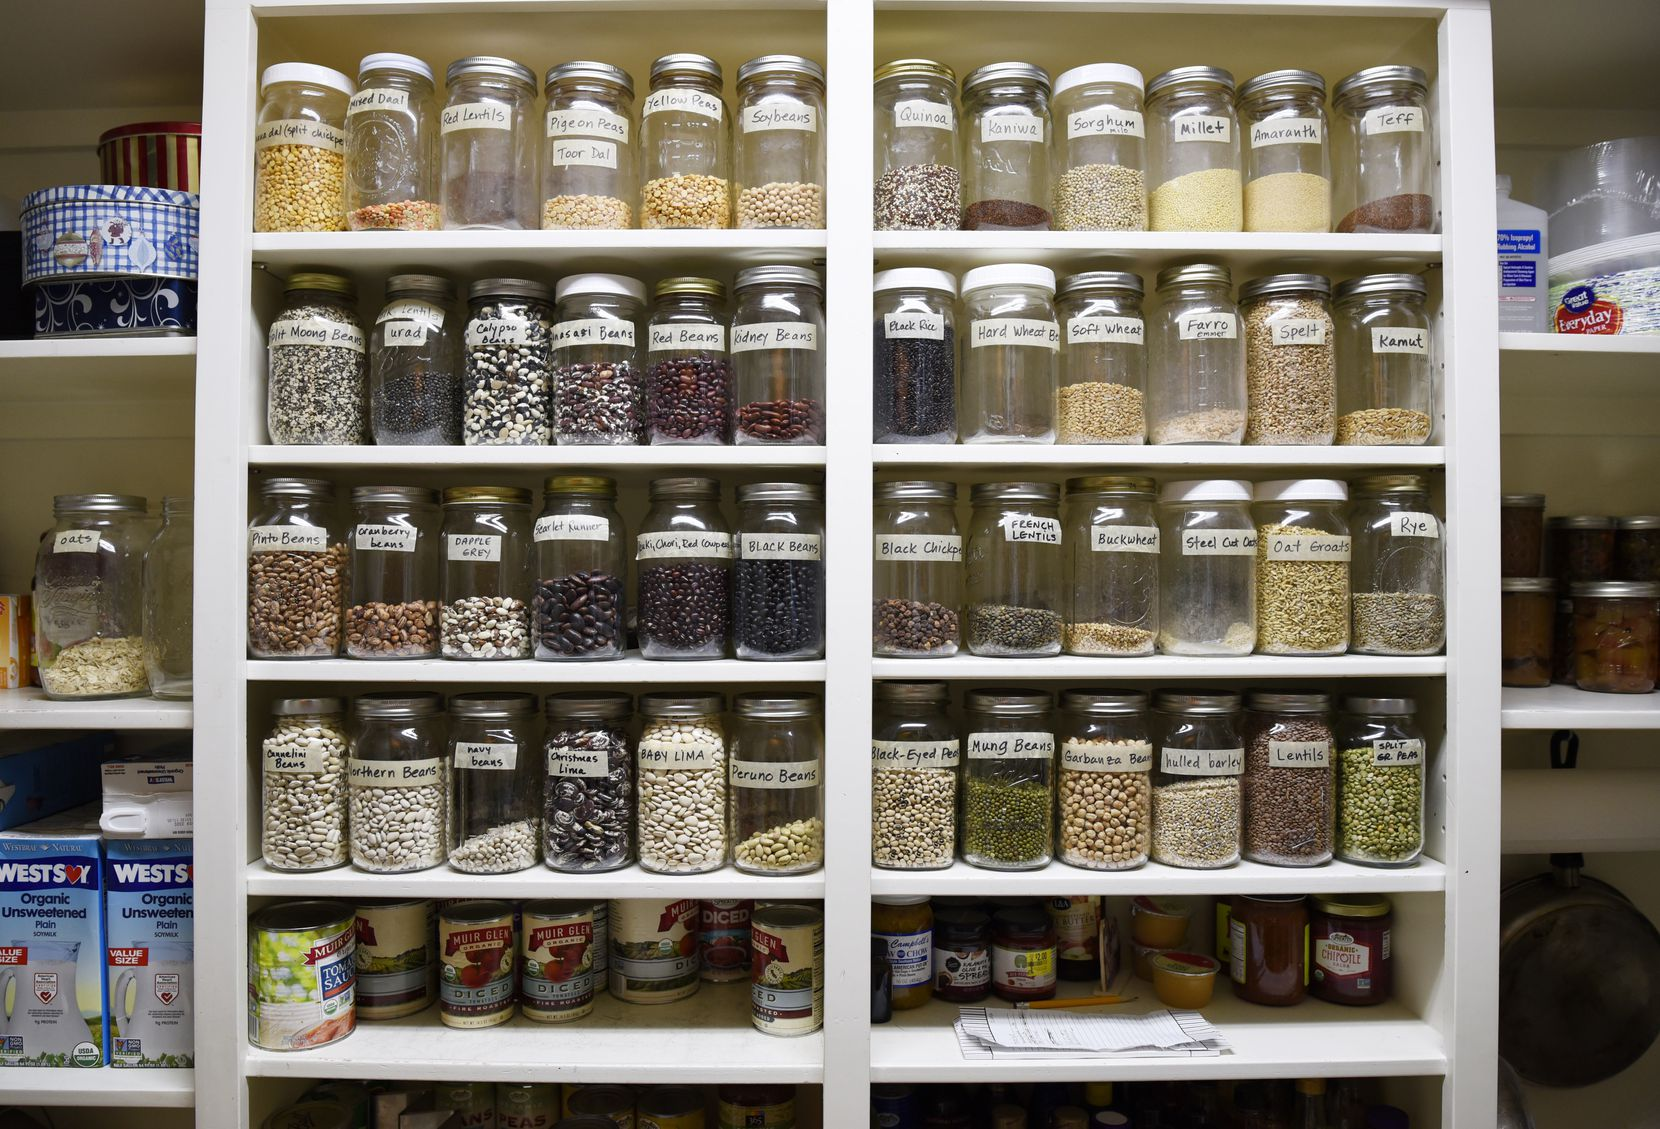 Pat and Dianne Doyle keep an assortment of legumes and grains in their kitchen.